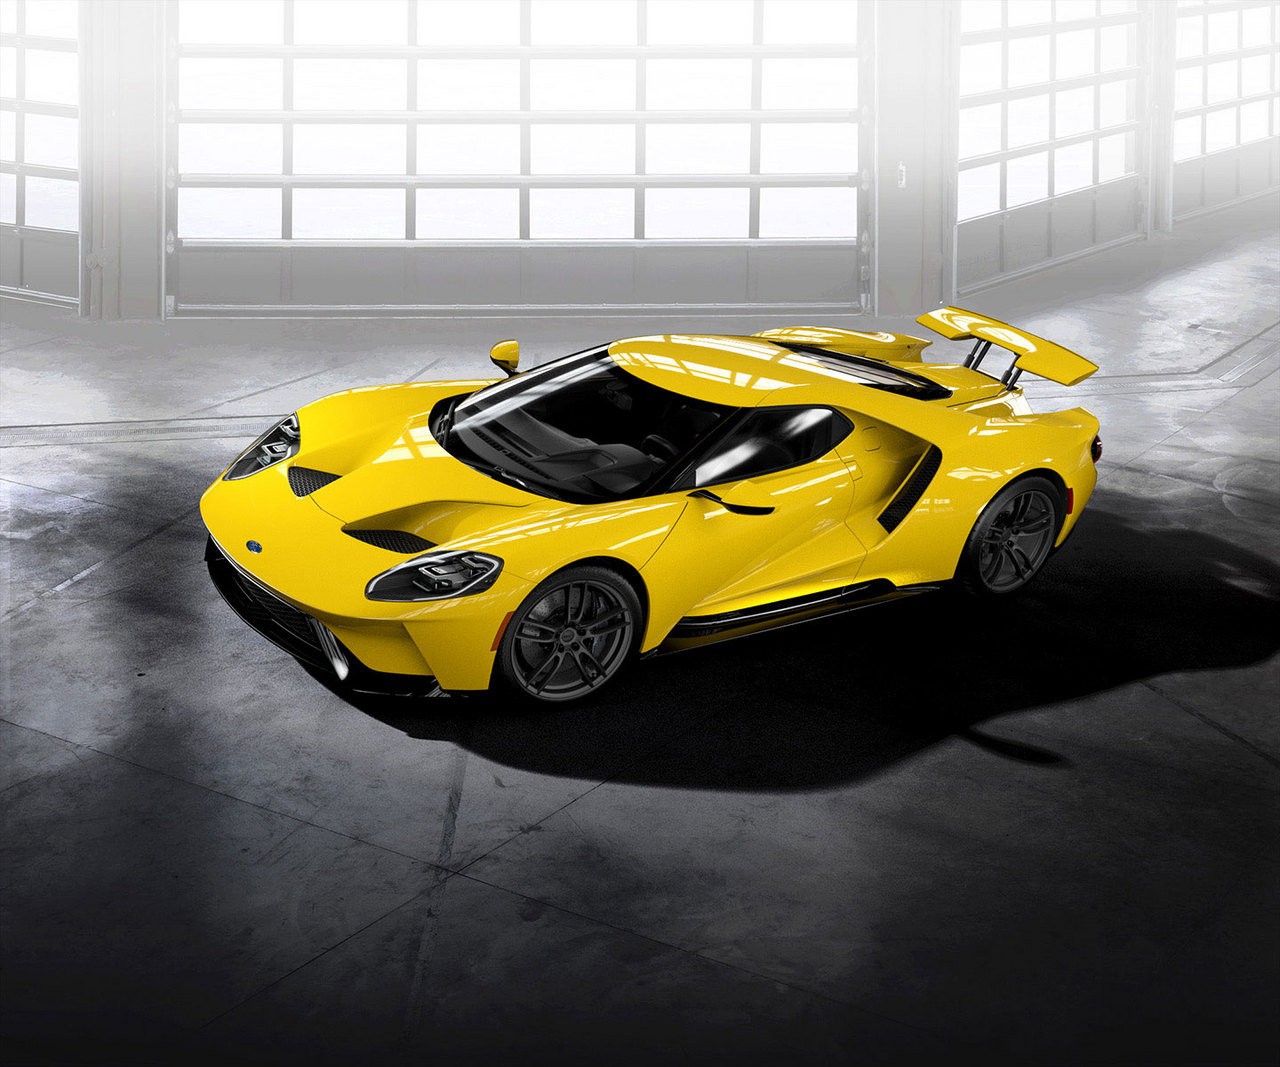 2017 ford gt picture 672571 car review top speed. Black Bedroom Furniture Sets. Home Design Ideas